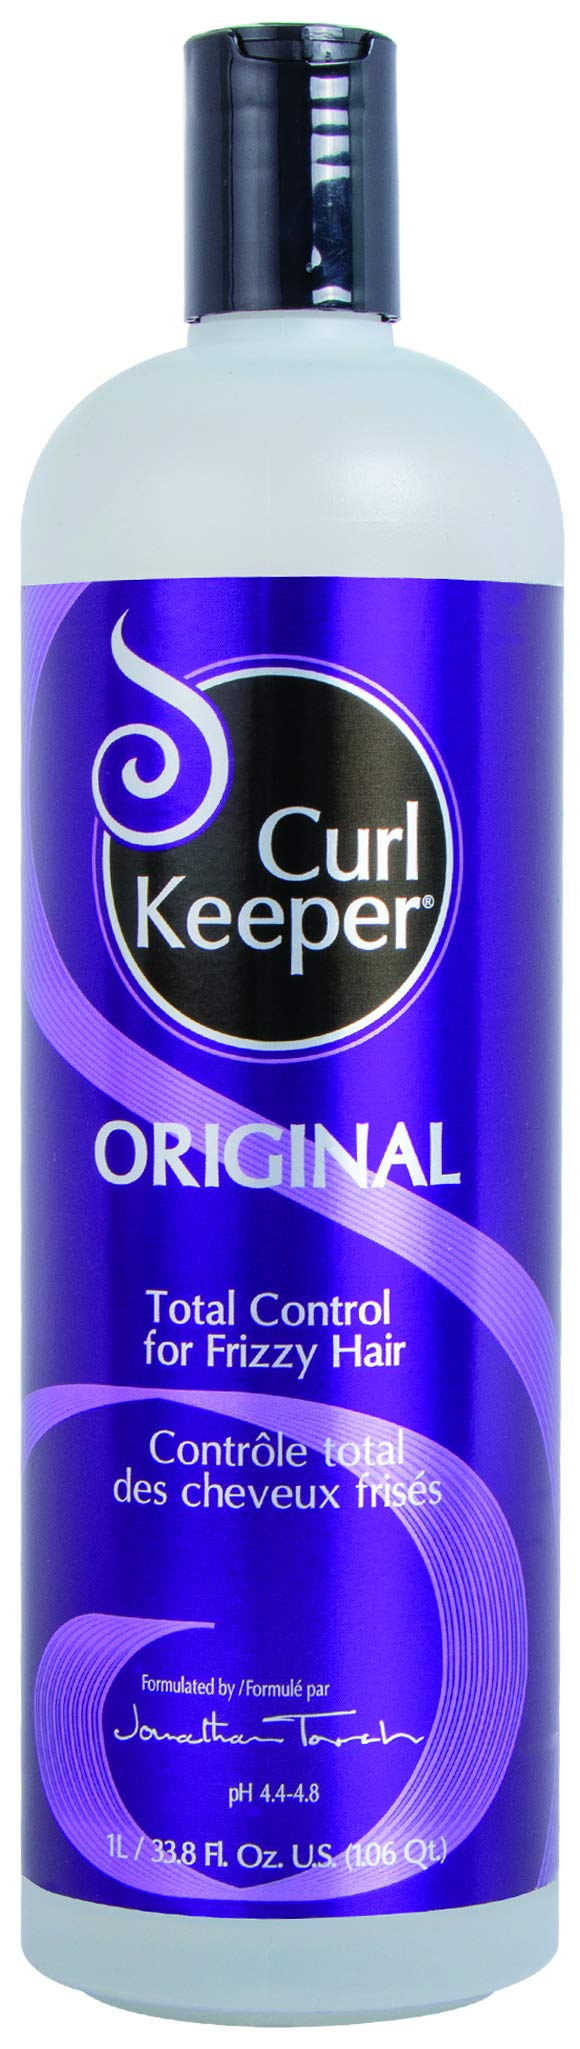 CURLY HAIR SOLUTION Curl Keeper Original - Total Control In All Weather Conditions For Well Defined, Frizz-Free Curls With No Product Build Up (33.8 Ounce / 1 Liter)